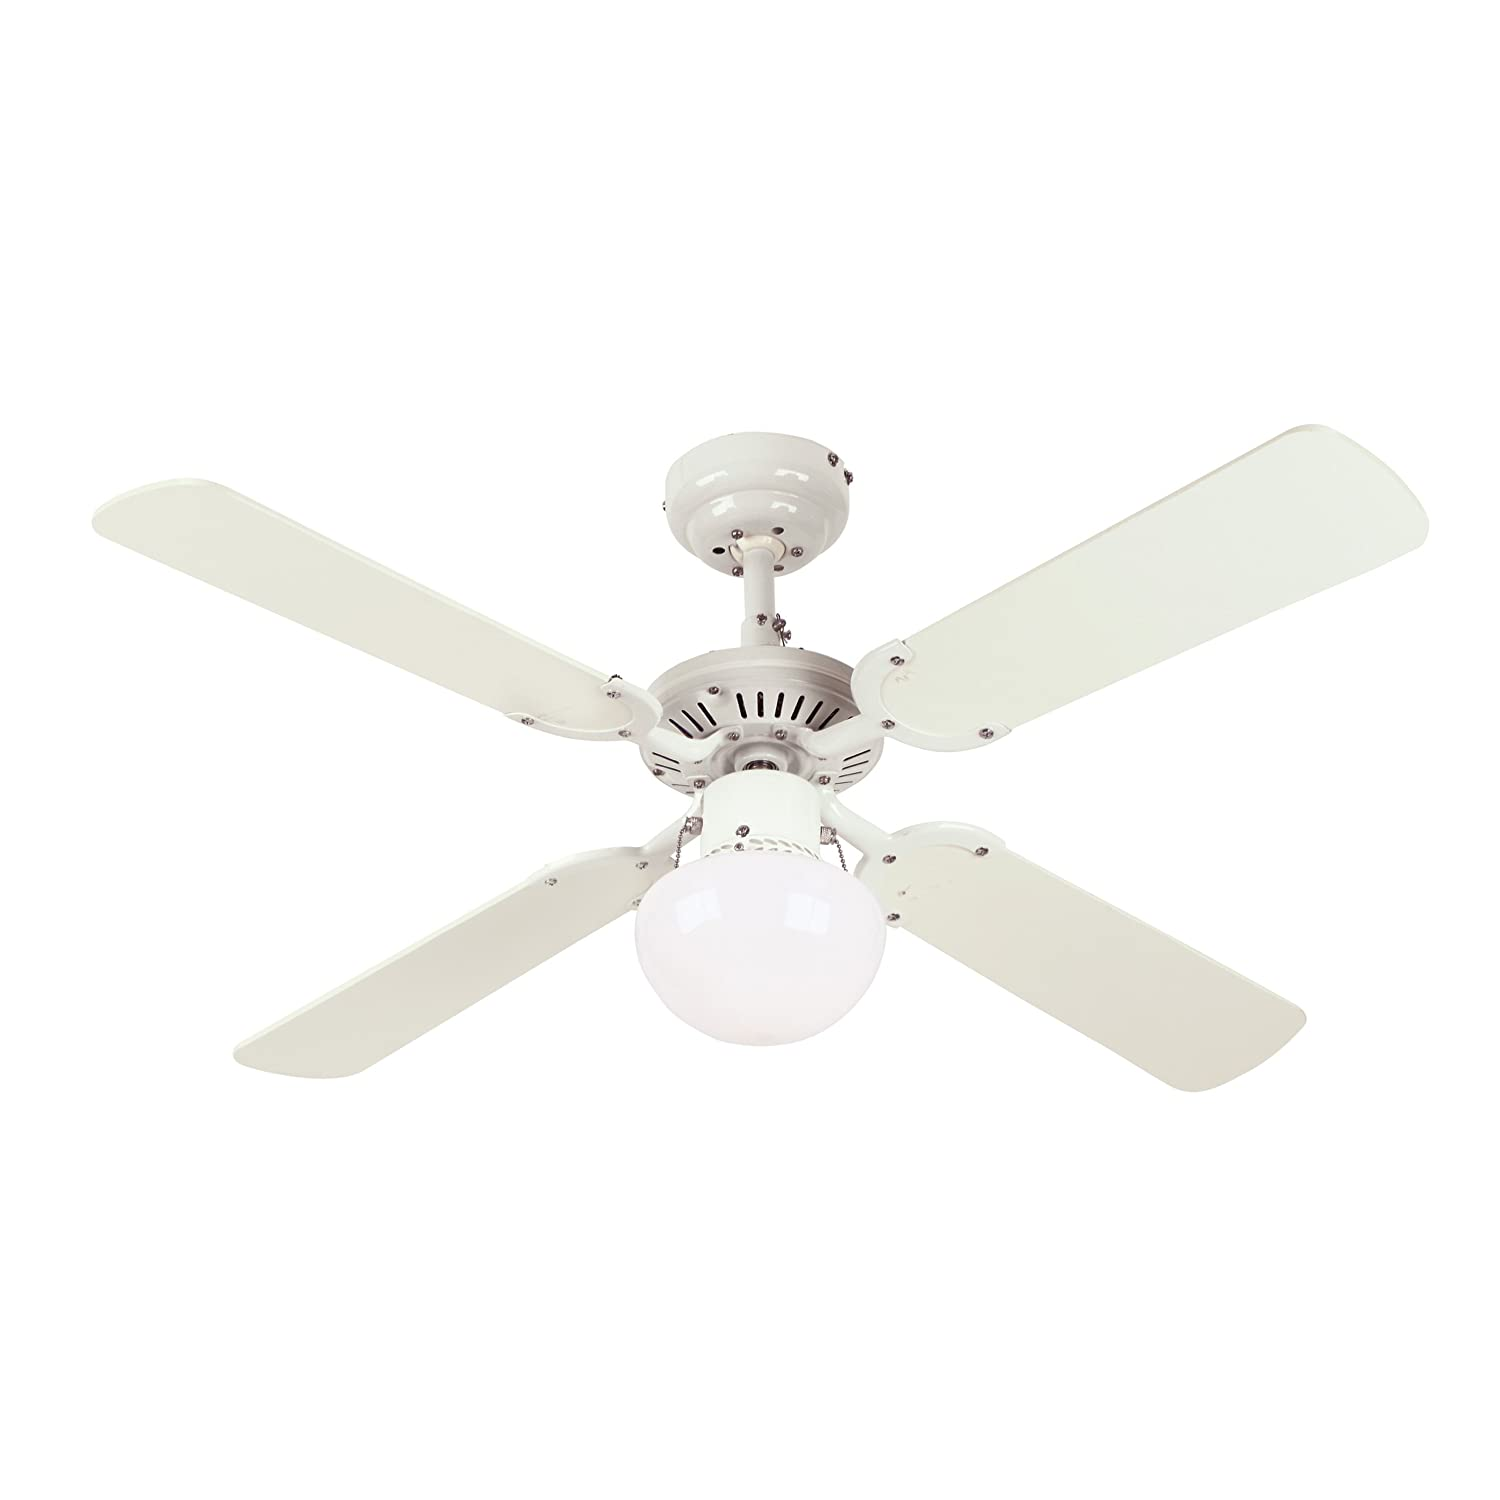 Westinghouse Princess Ambiance 42 Inch Ceiling Fan White